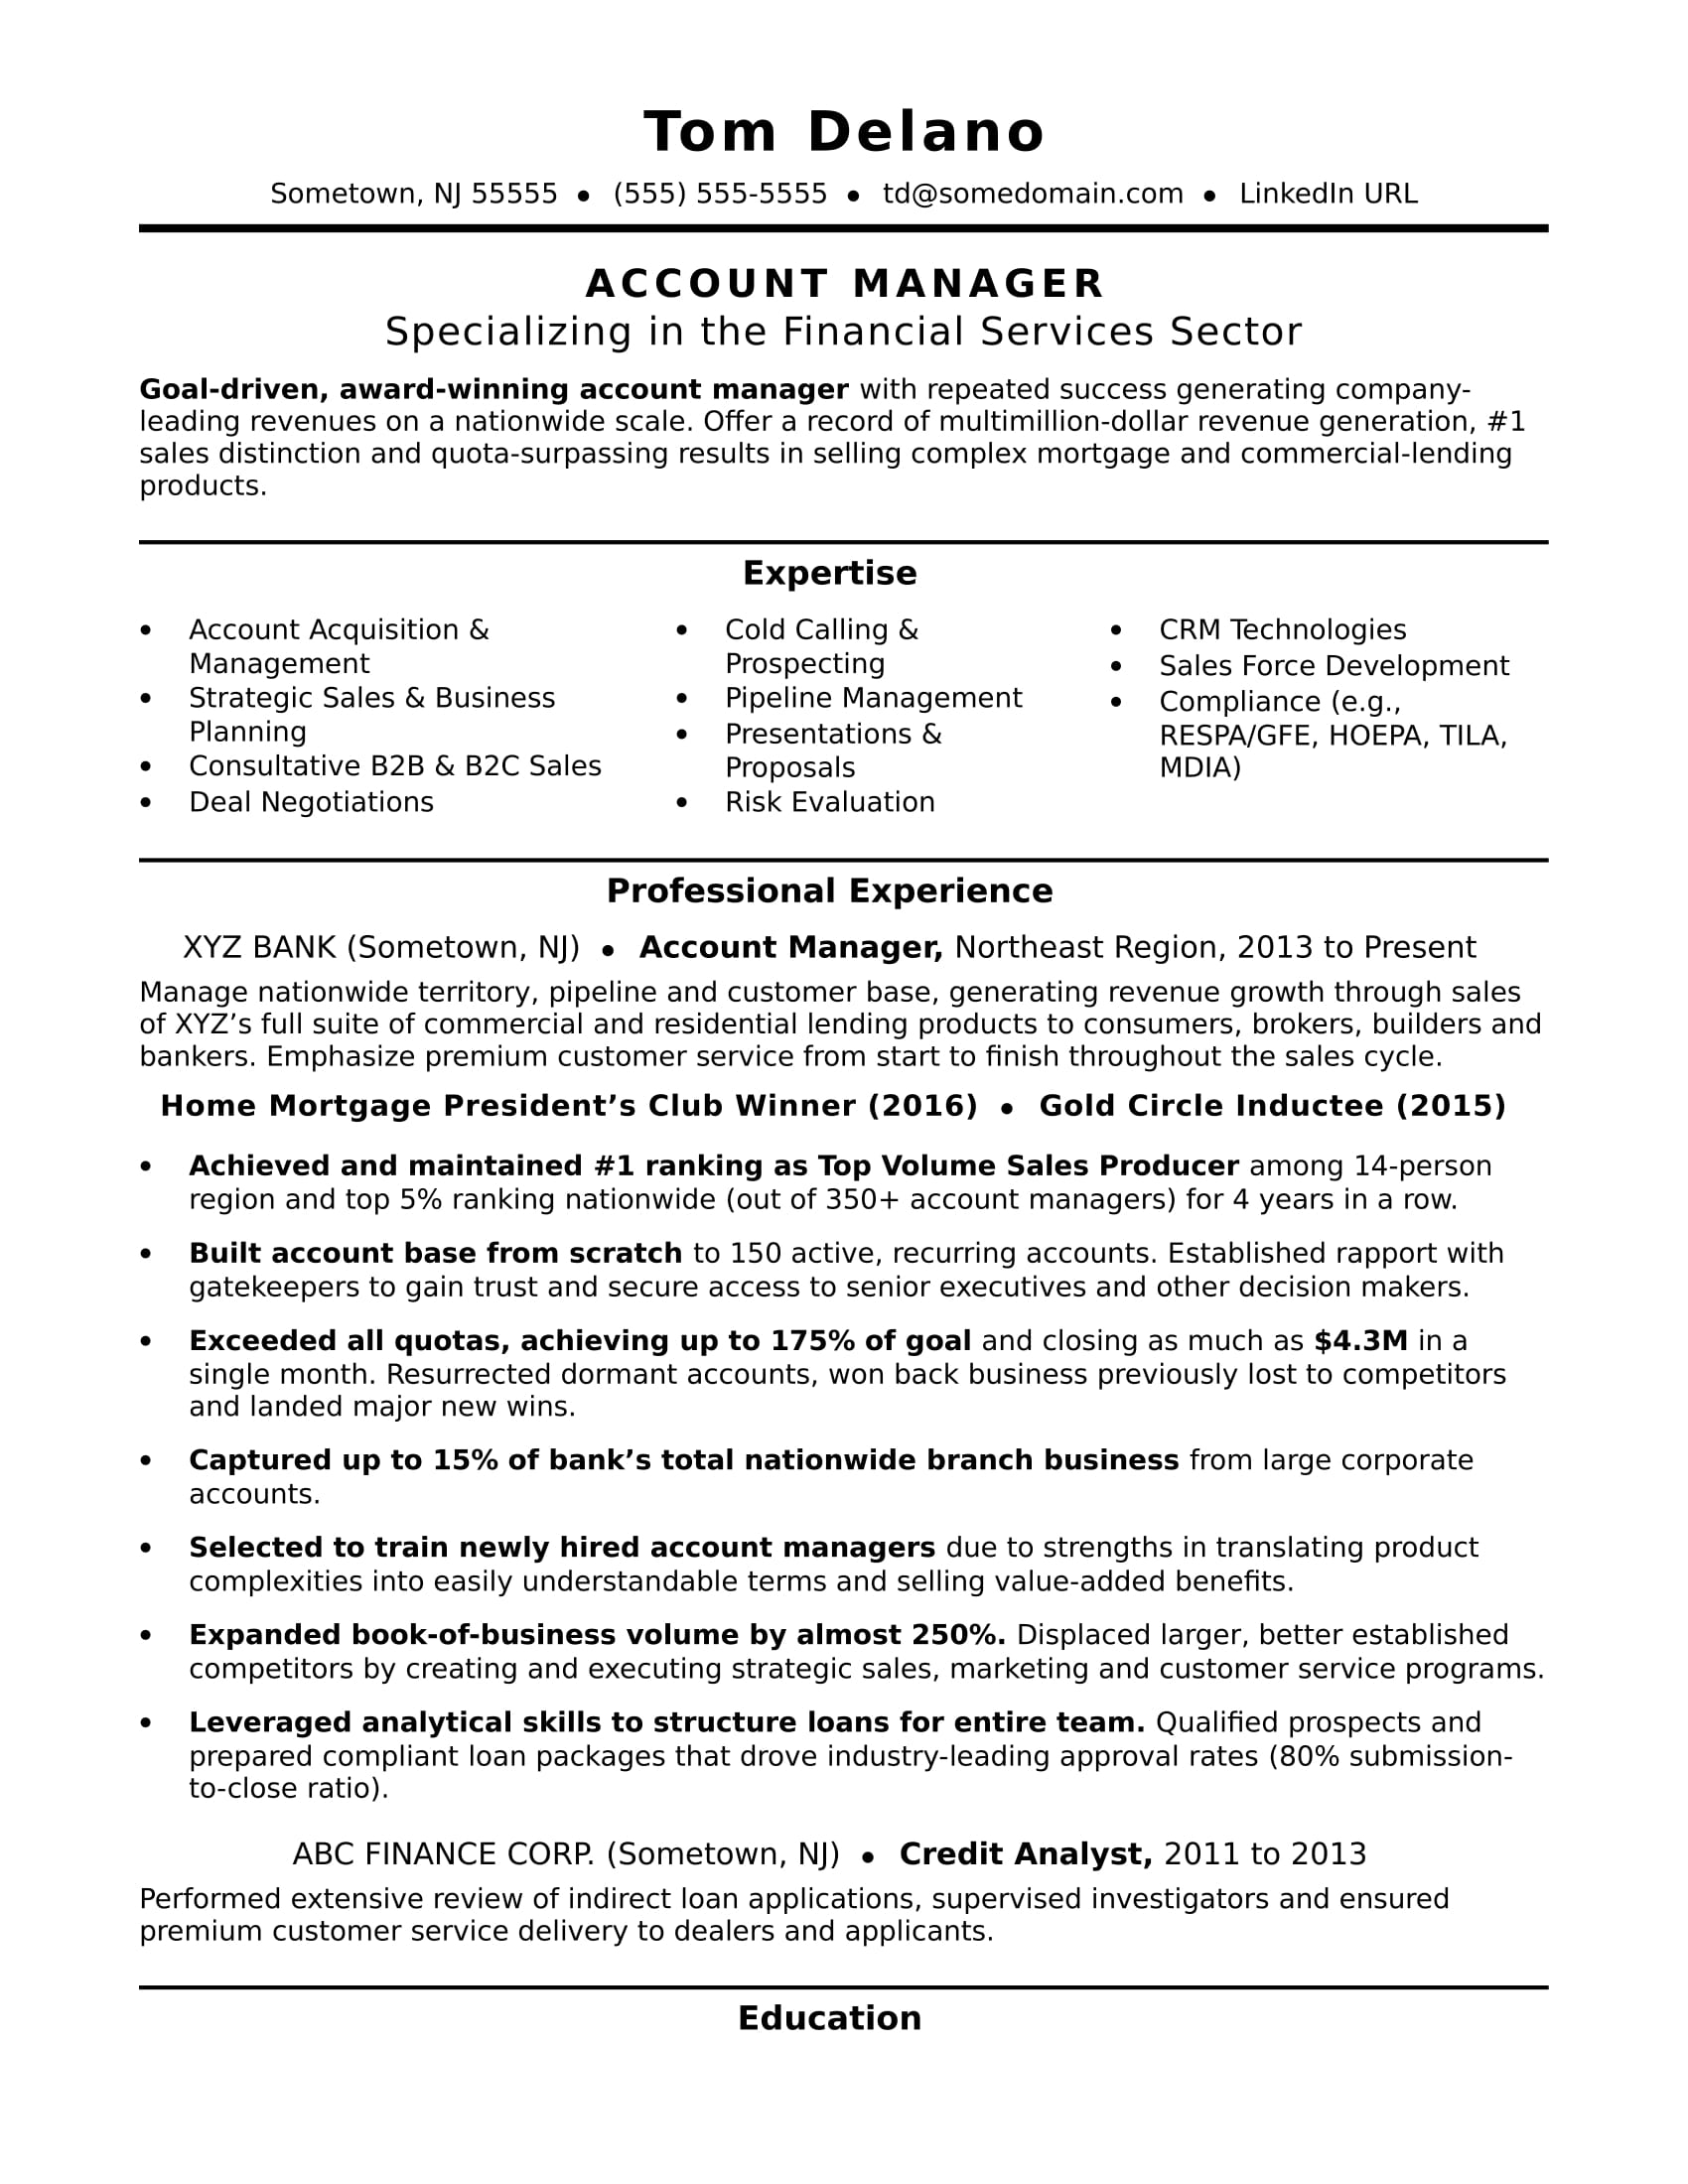 Account Manager Resume Sample  Accounting Manager Resume Examples